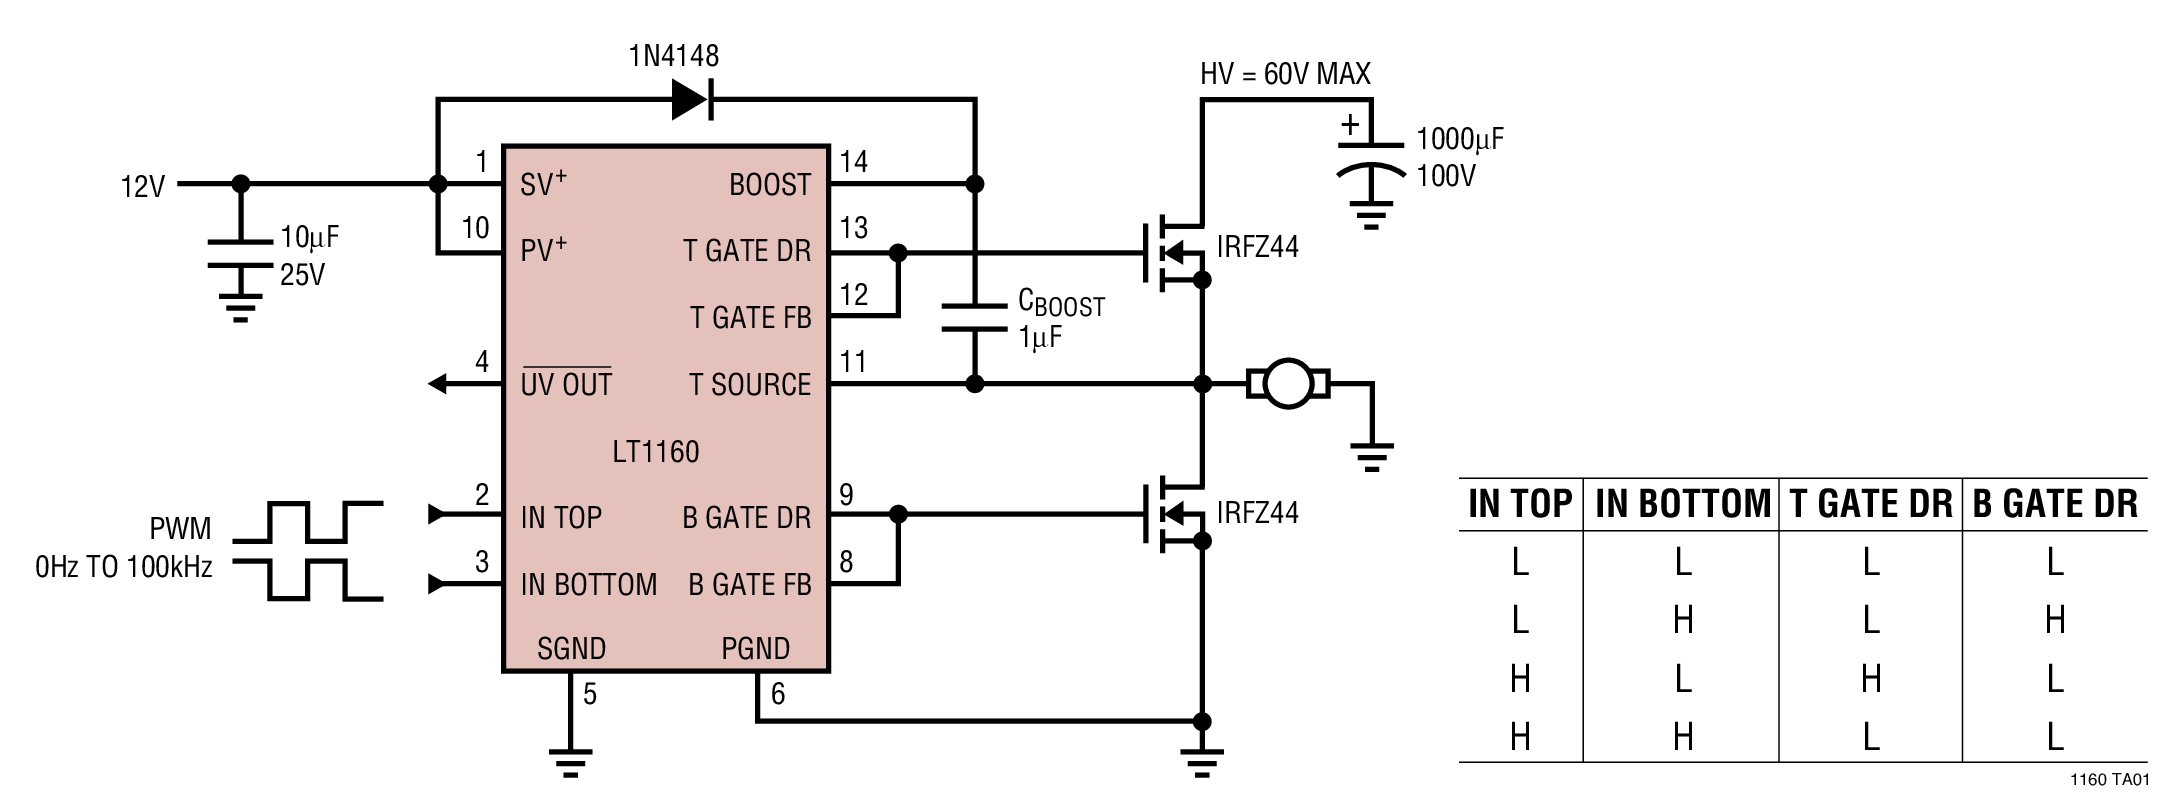 high power led driver circuit diagram trailer wiring with electric brakes lt1160 lt1162 60v max supply referenced dc motor half